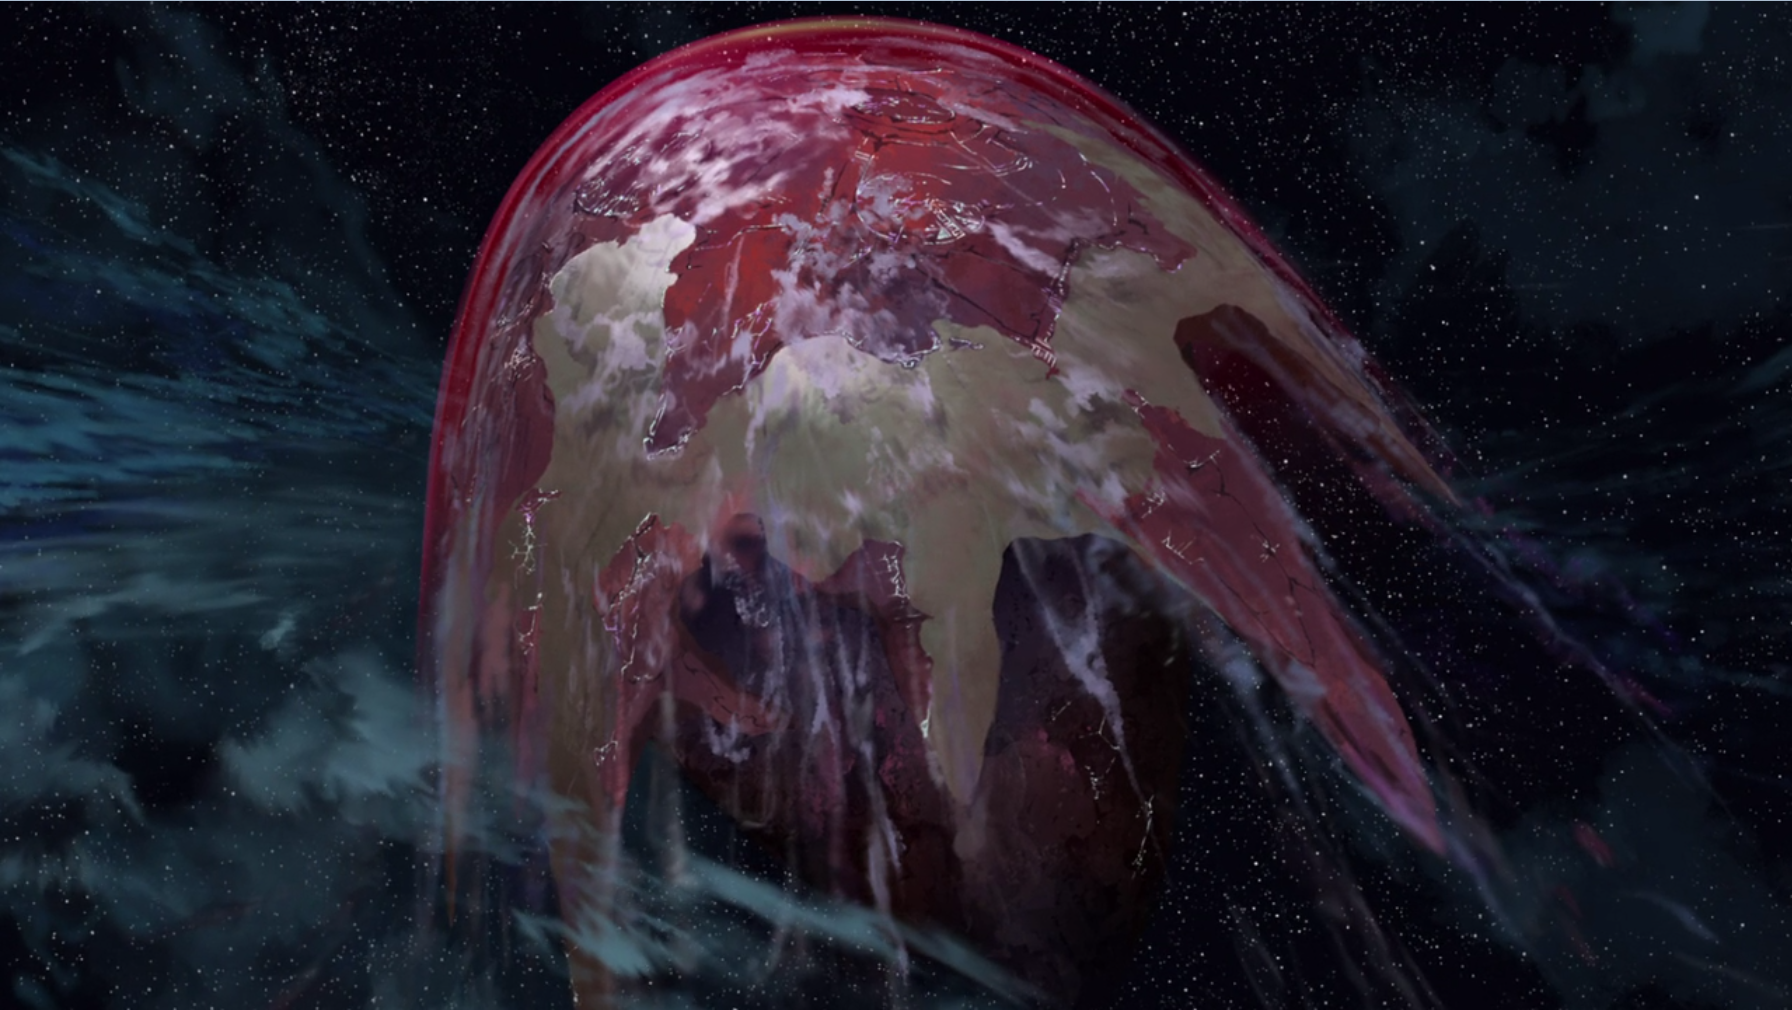 Planet Daibazaal